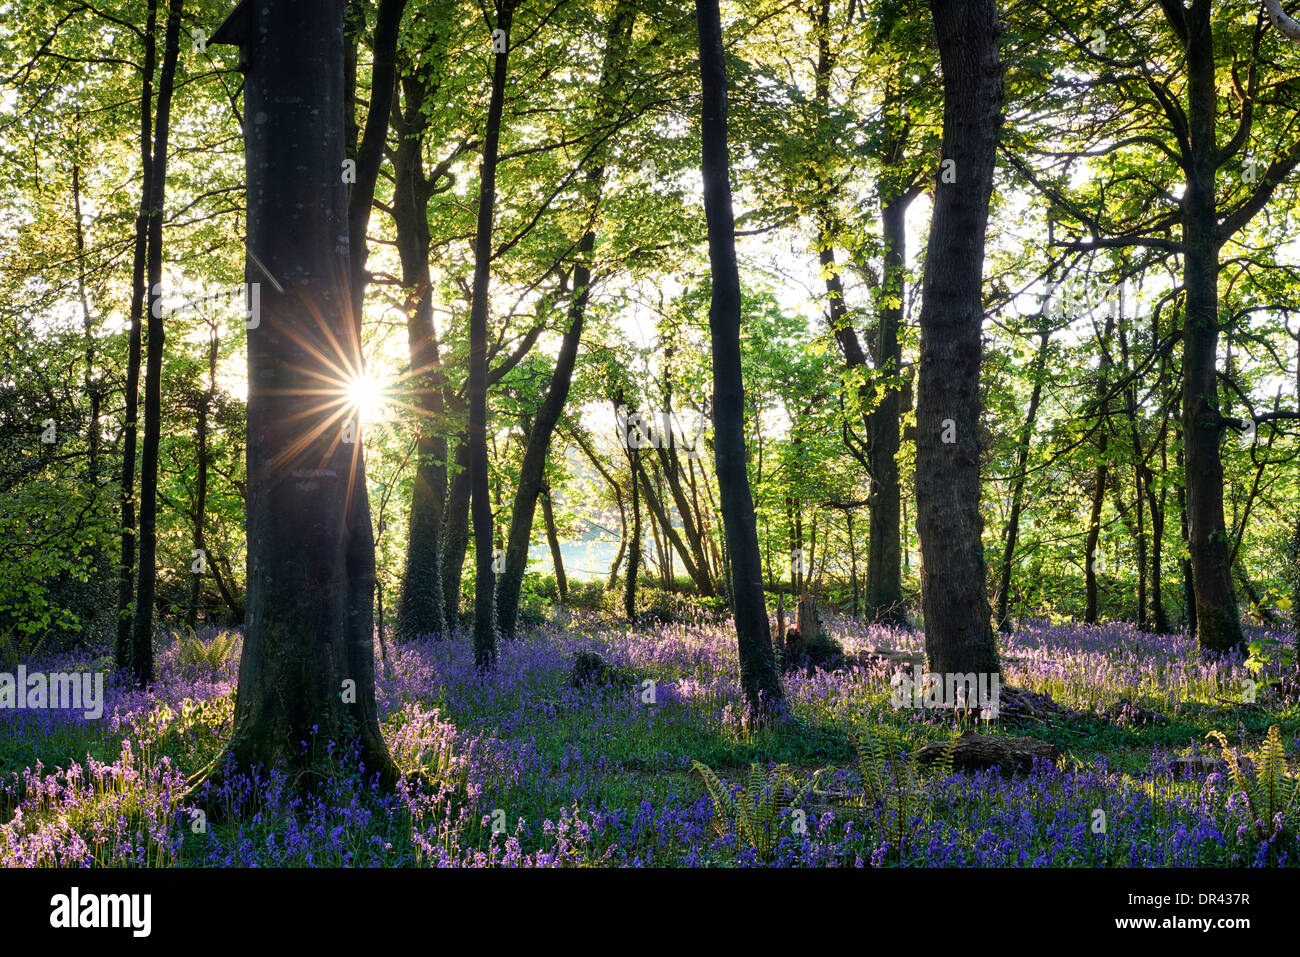 Sun bursting through the trees casting shadows over a carpet of bluebells - Stock Image